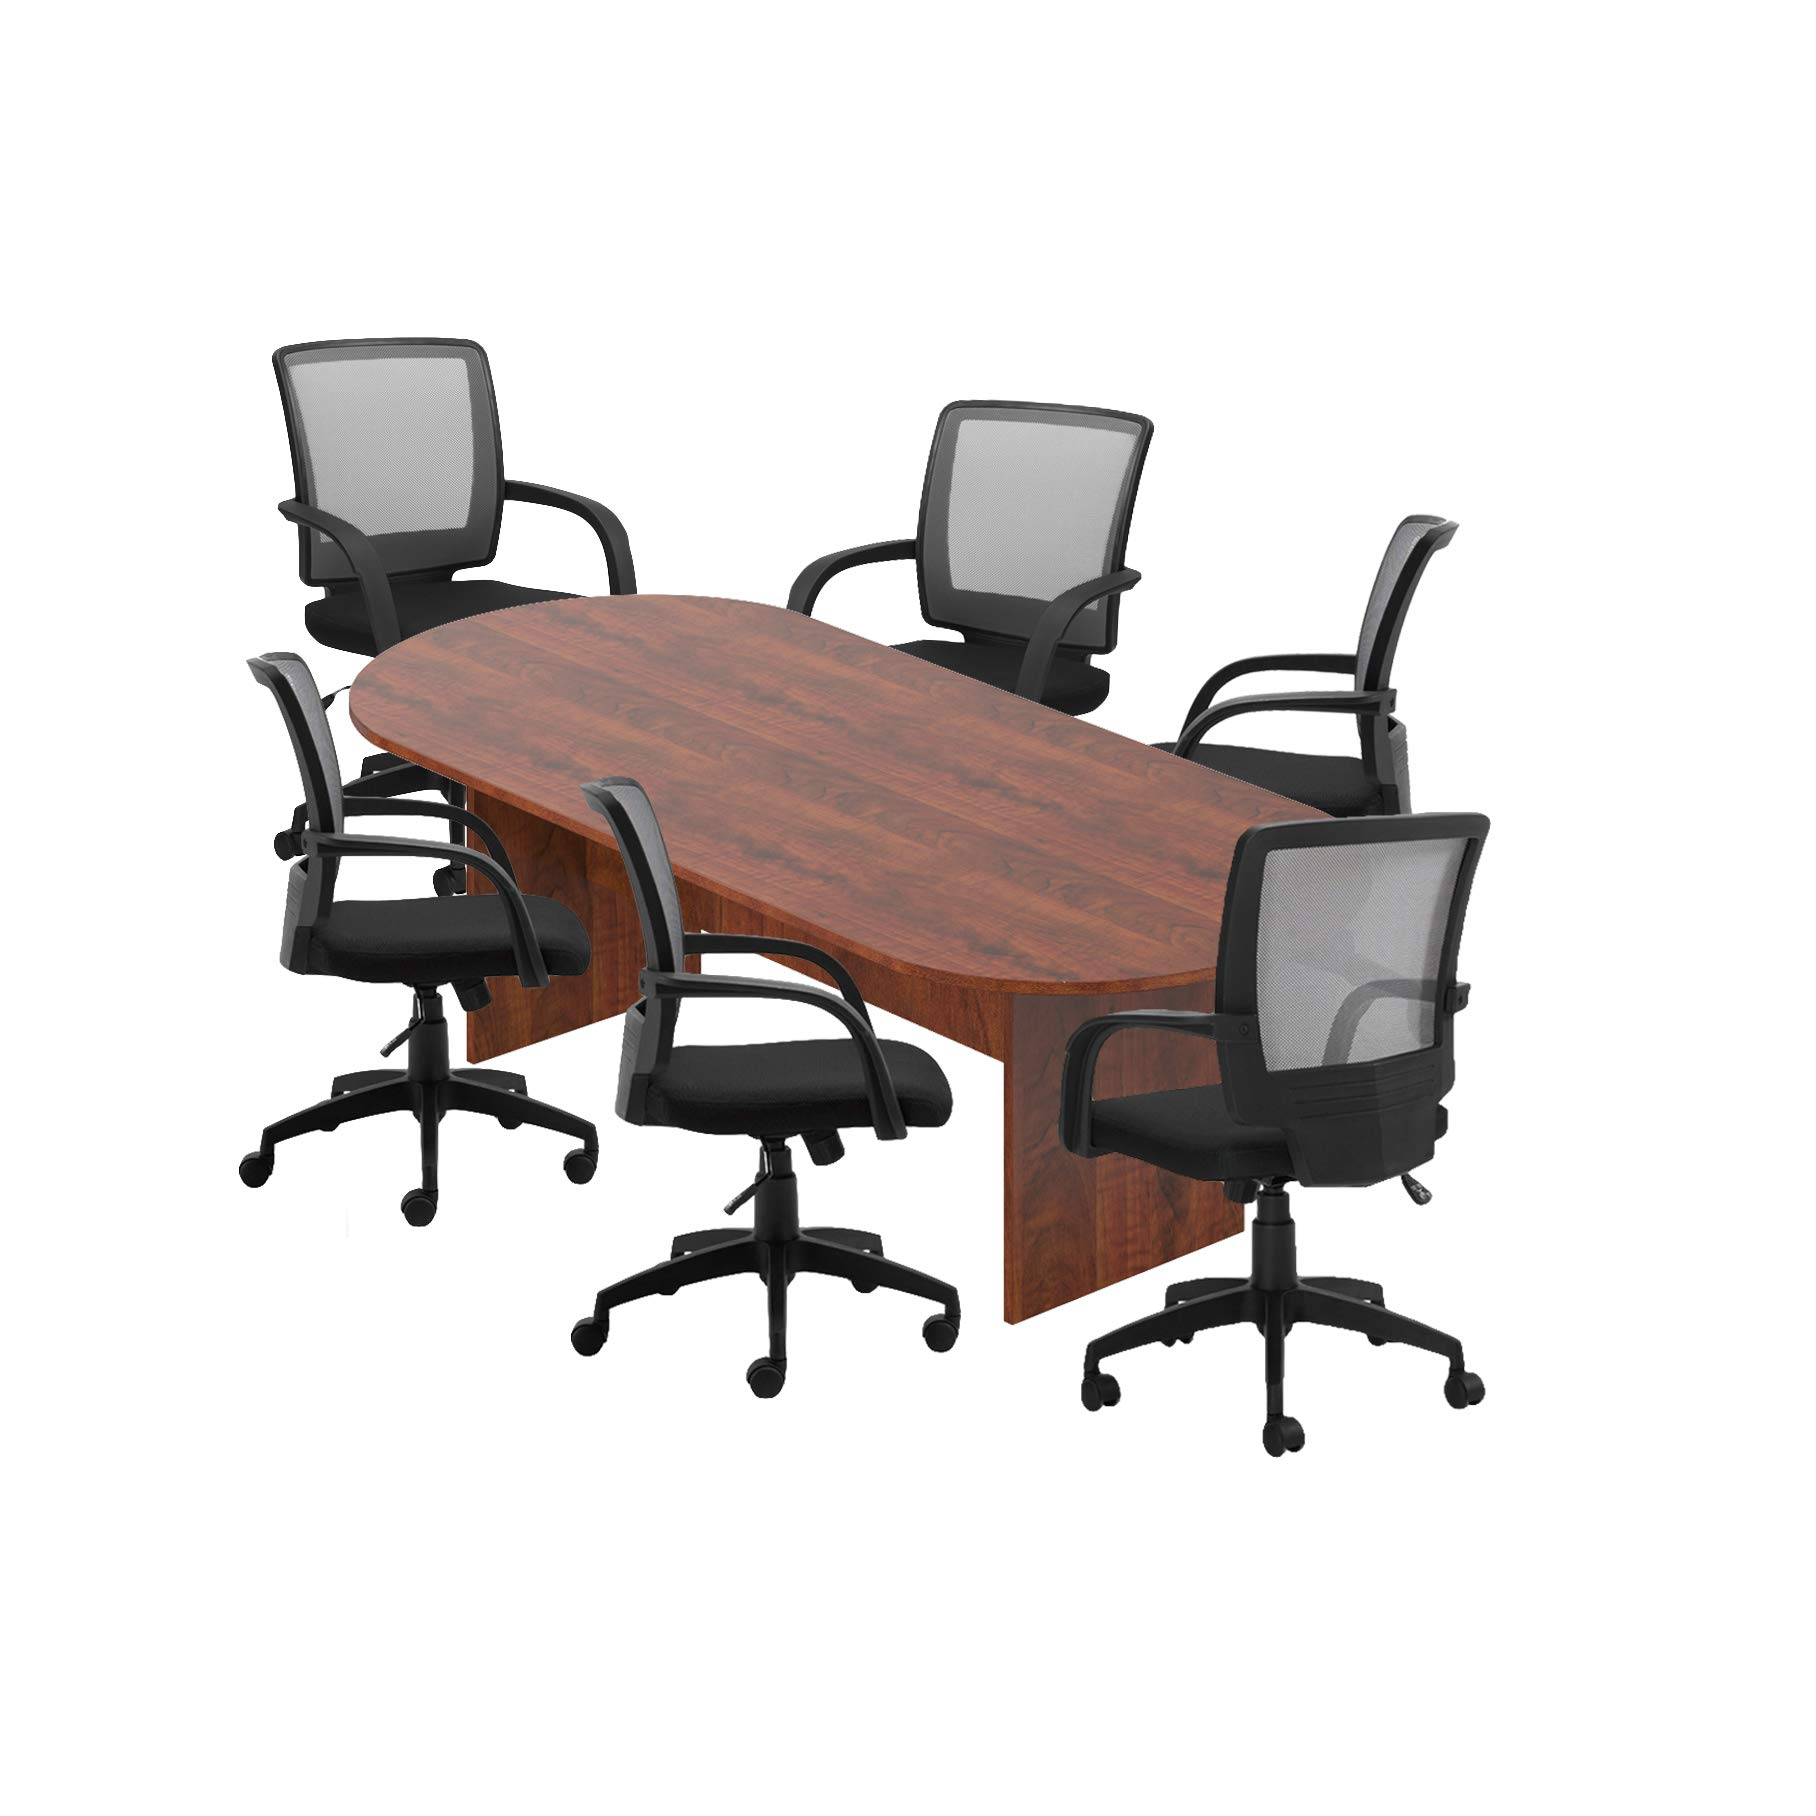 GOF 6FT, 8FT, 10FT Conference Table Chair Set, Cherry, Espresso, Mahogany, Walnut (8FT with 6 Chairs, Dark Cherry)